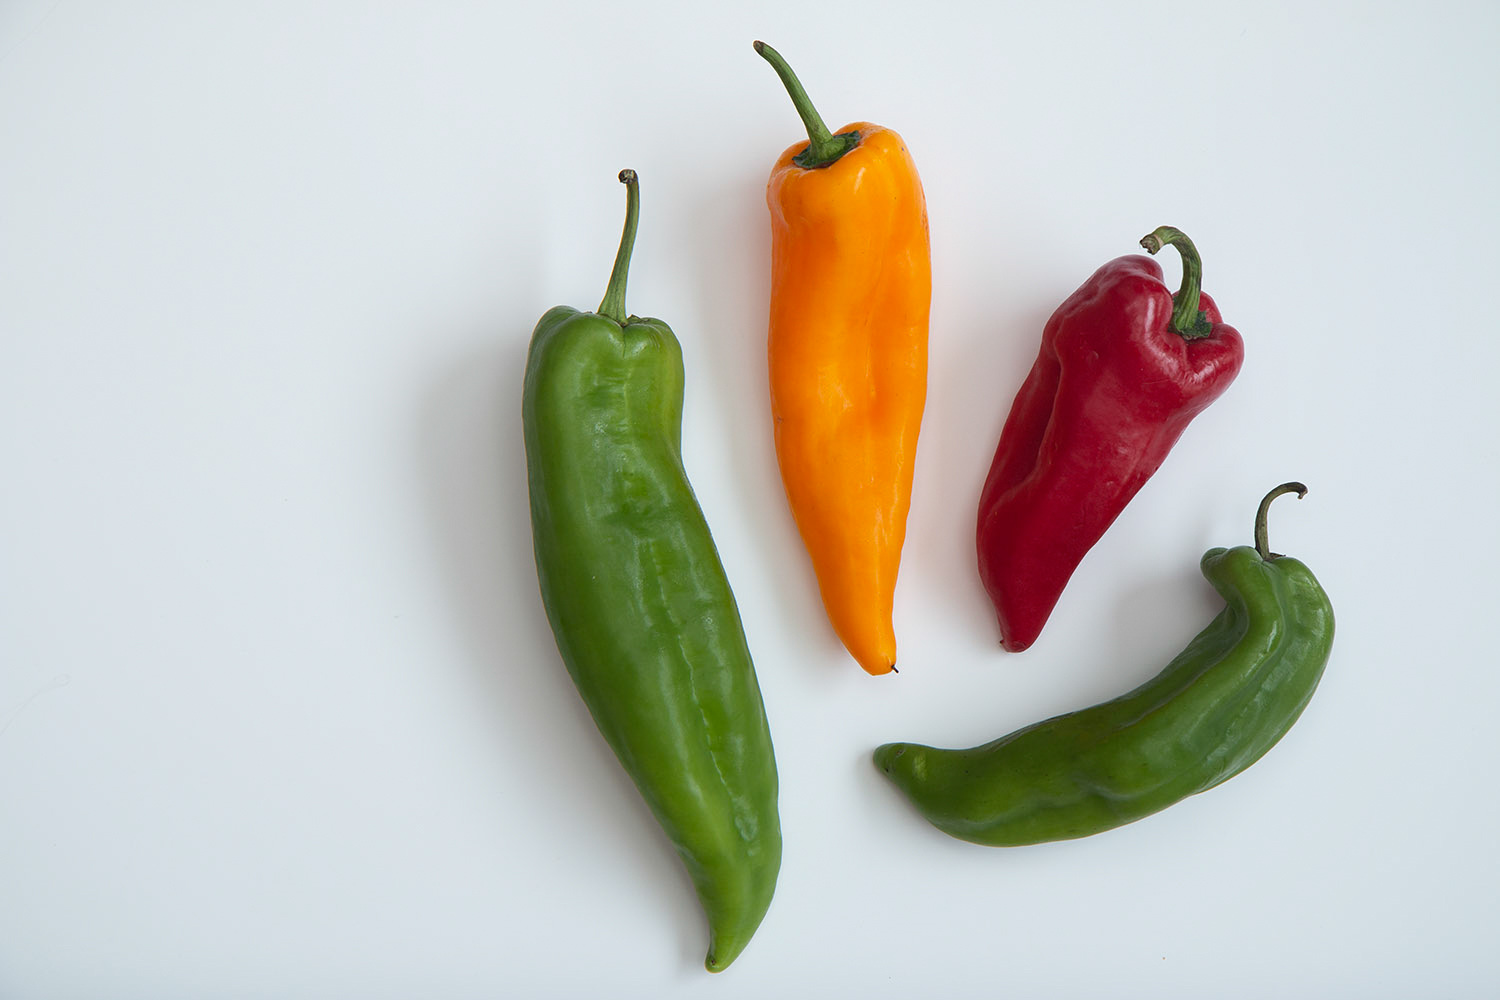 selection of chili peppers on white